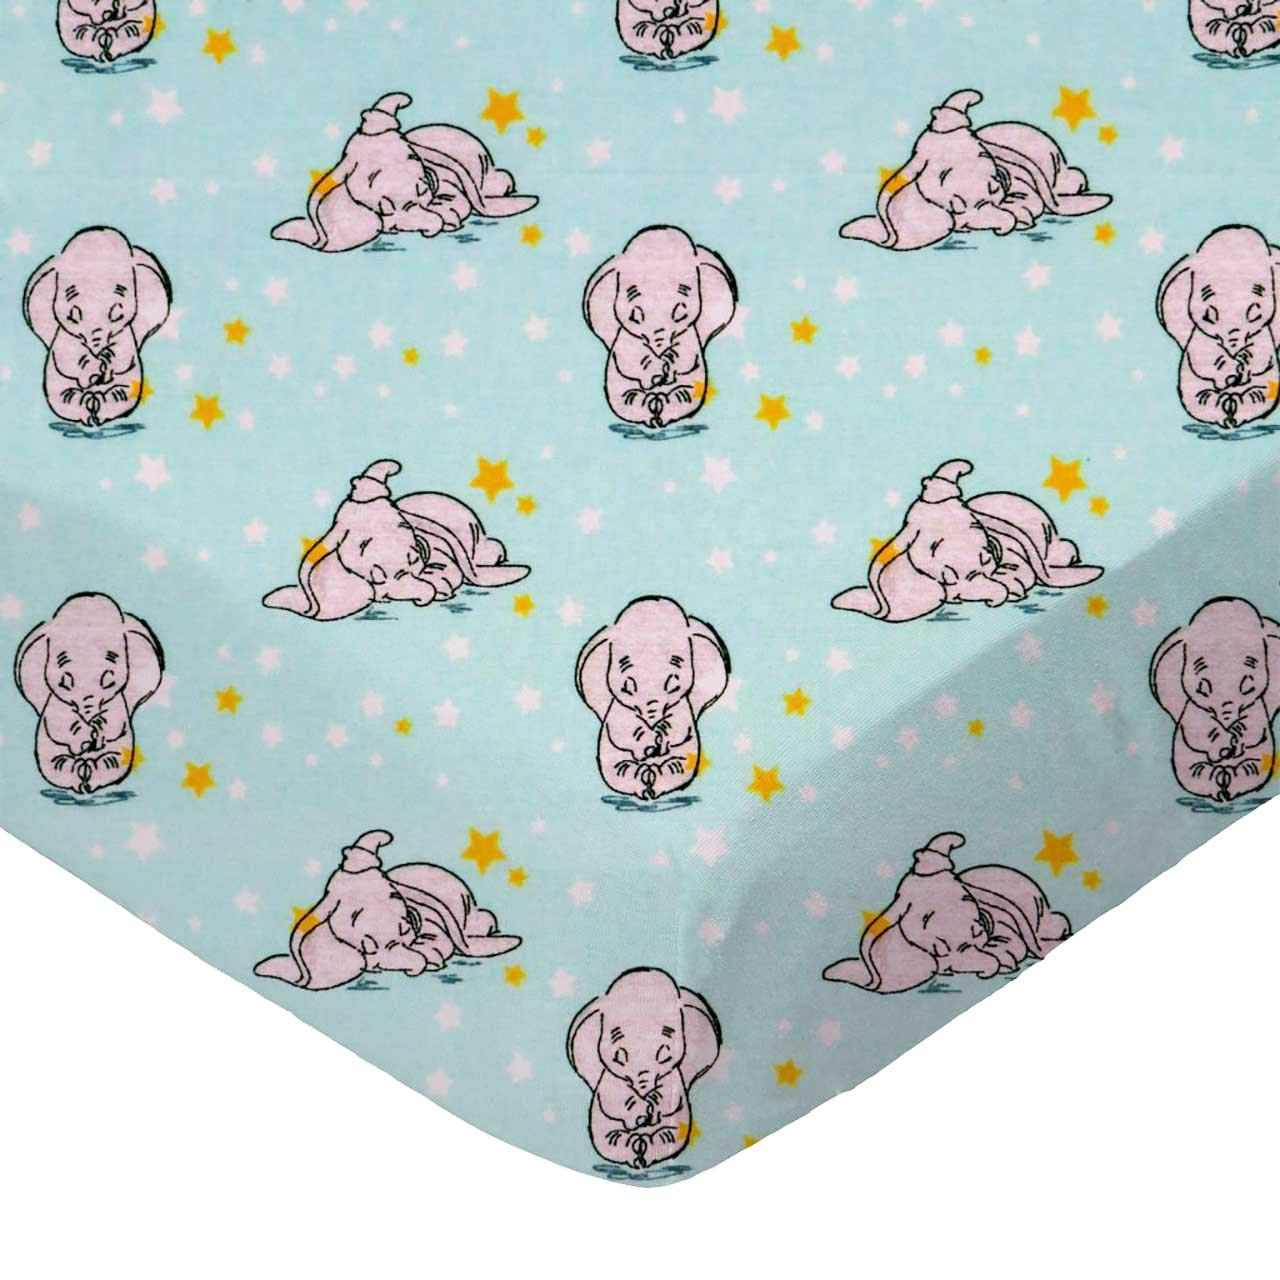 SheetWorld Fitted 100% Cotton Percale Pack N Play Sheet Fits Graco Square Play Yard 36 x 36, Dumbo Aqua, Made in USA